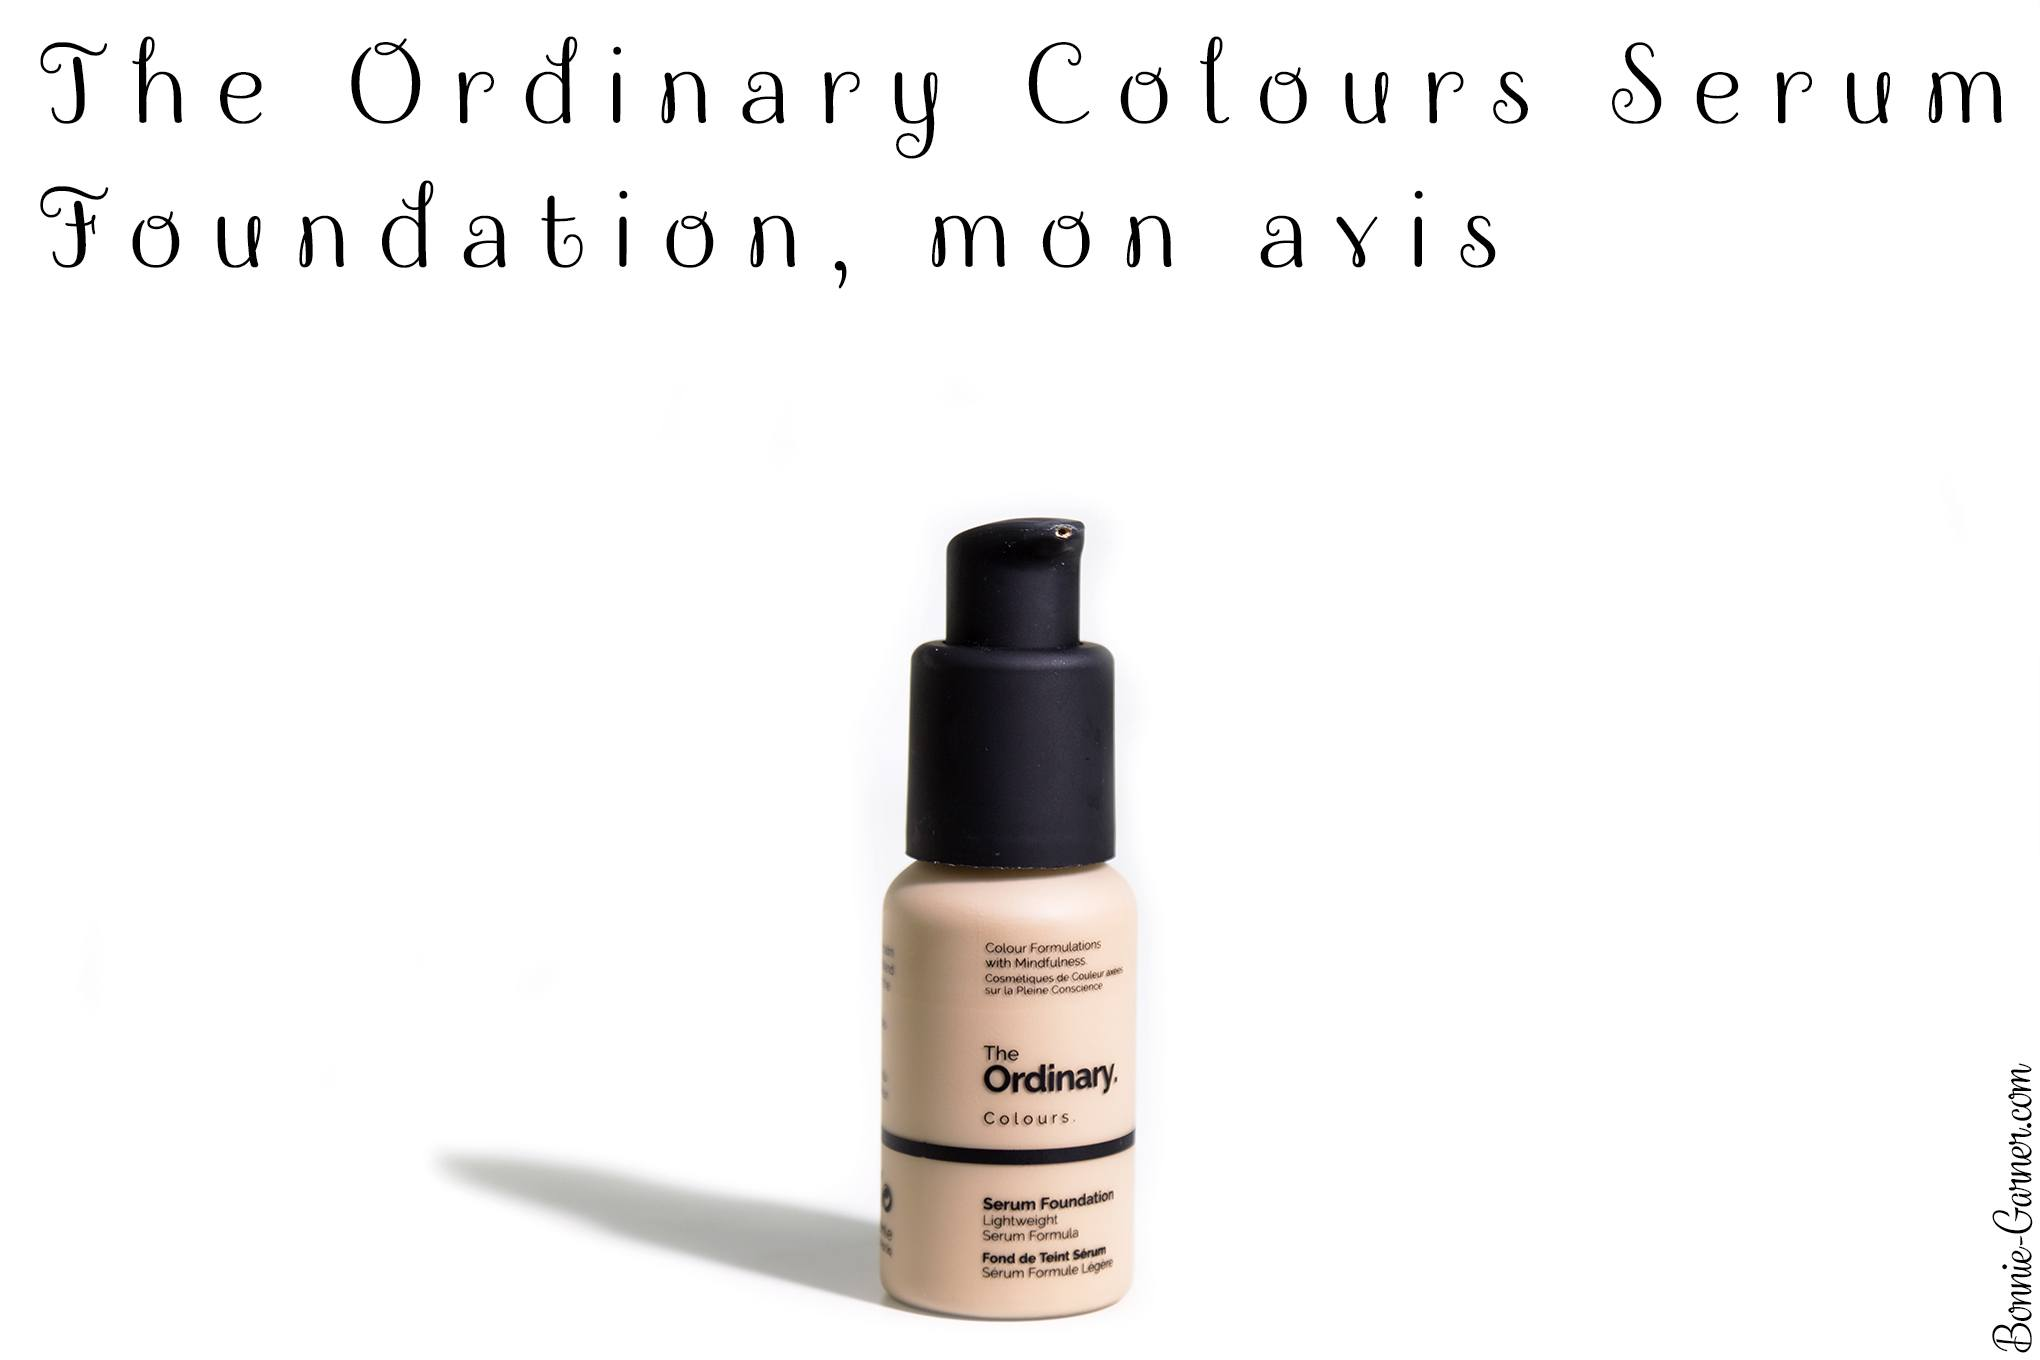 The Ordinary Colours Serum Foundation, mon avis